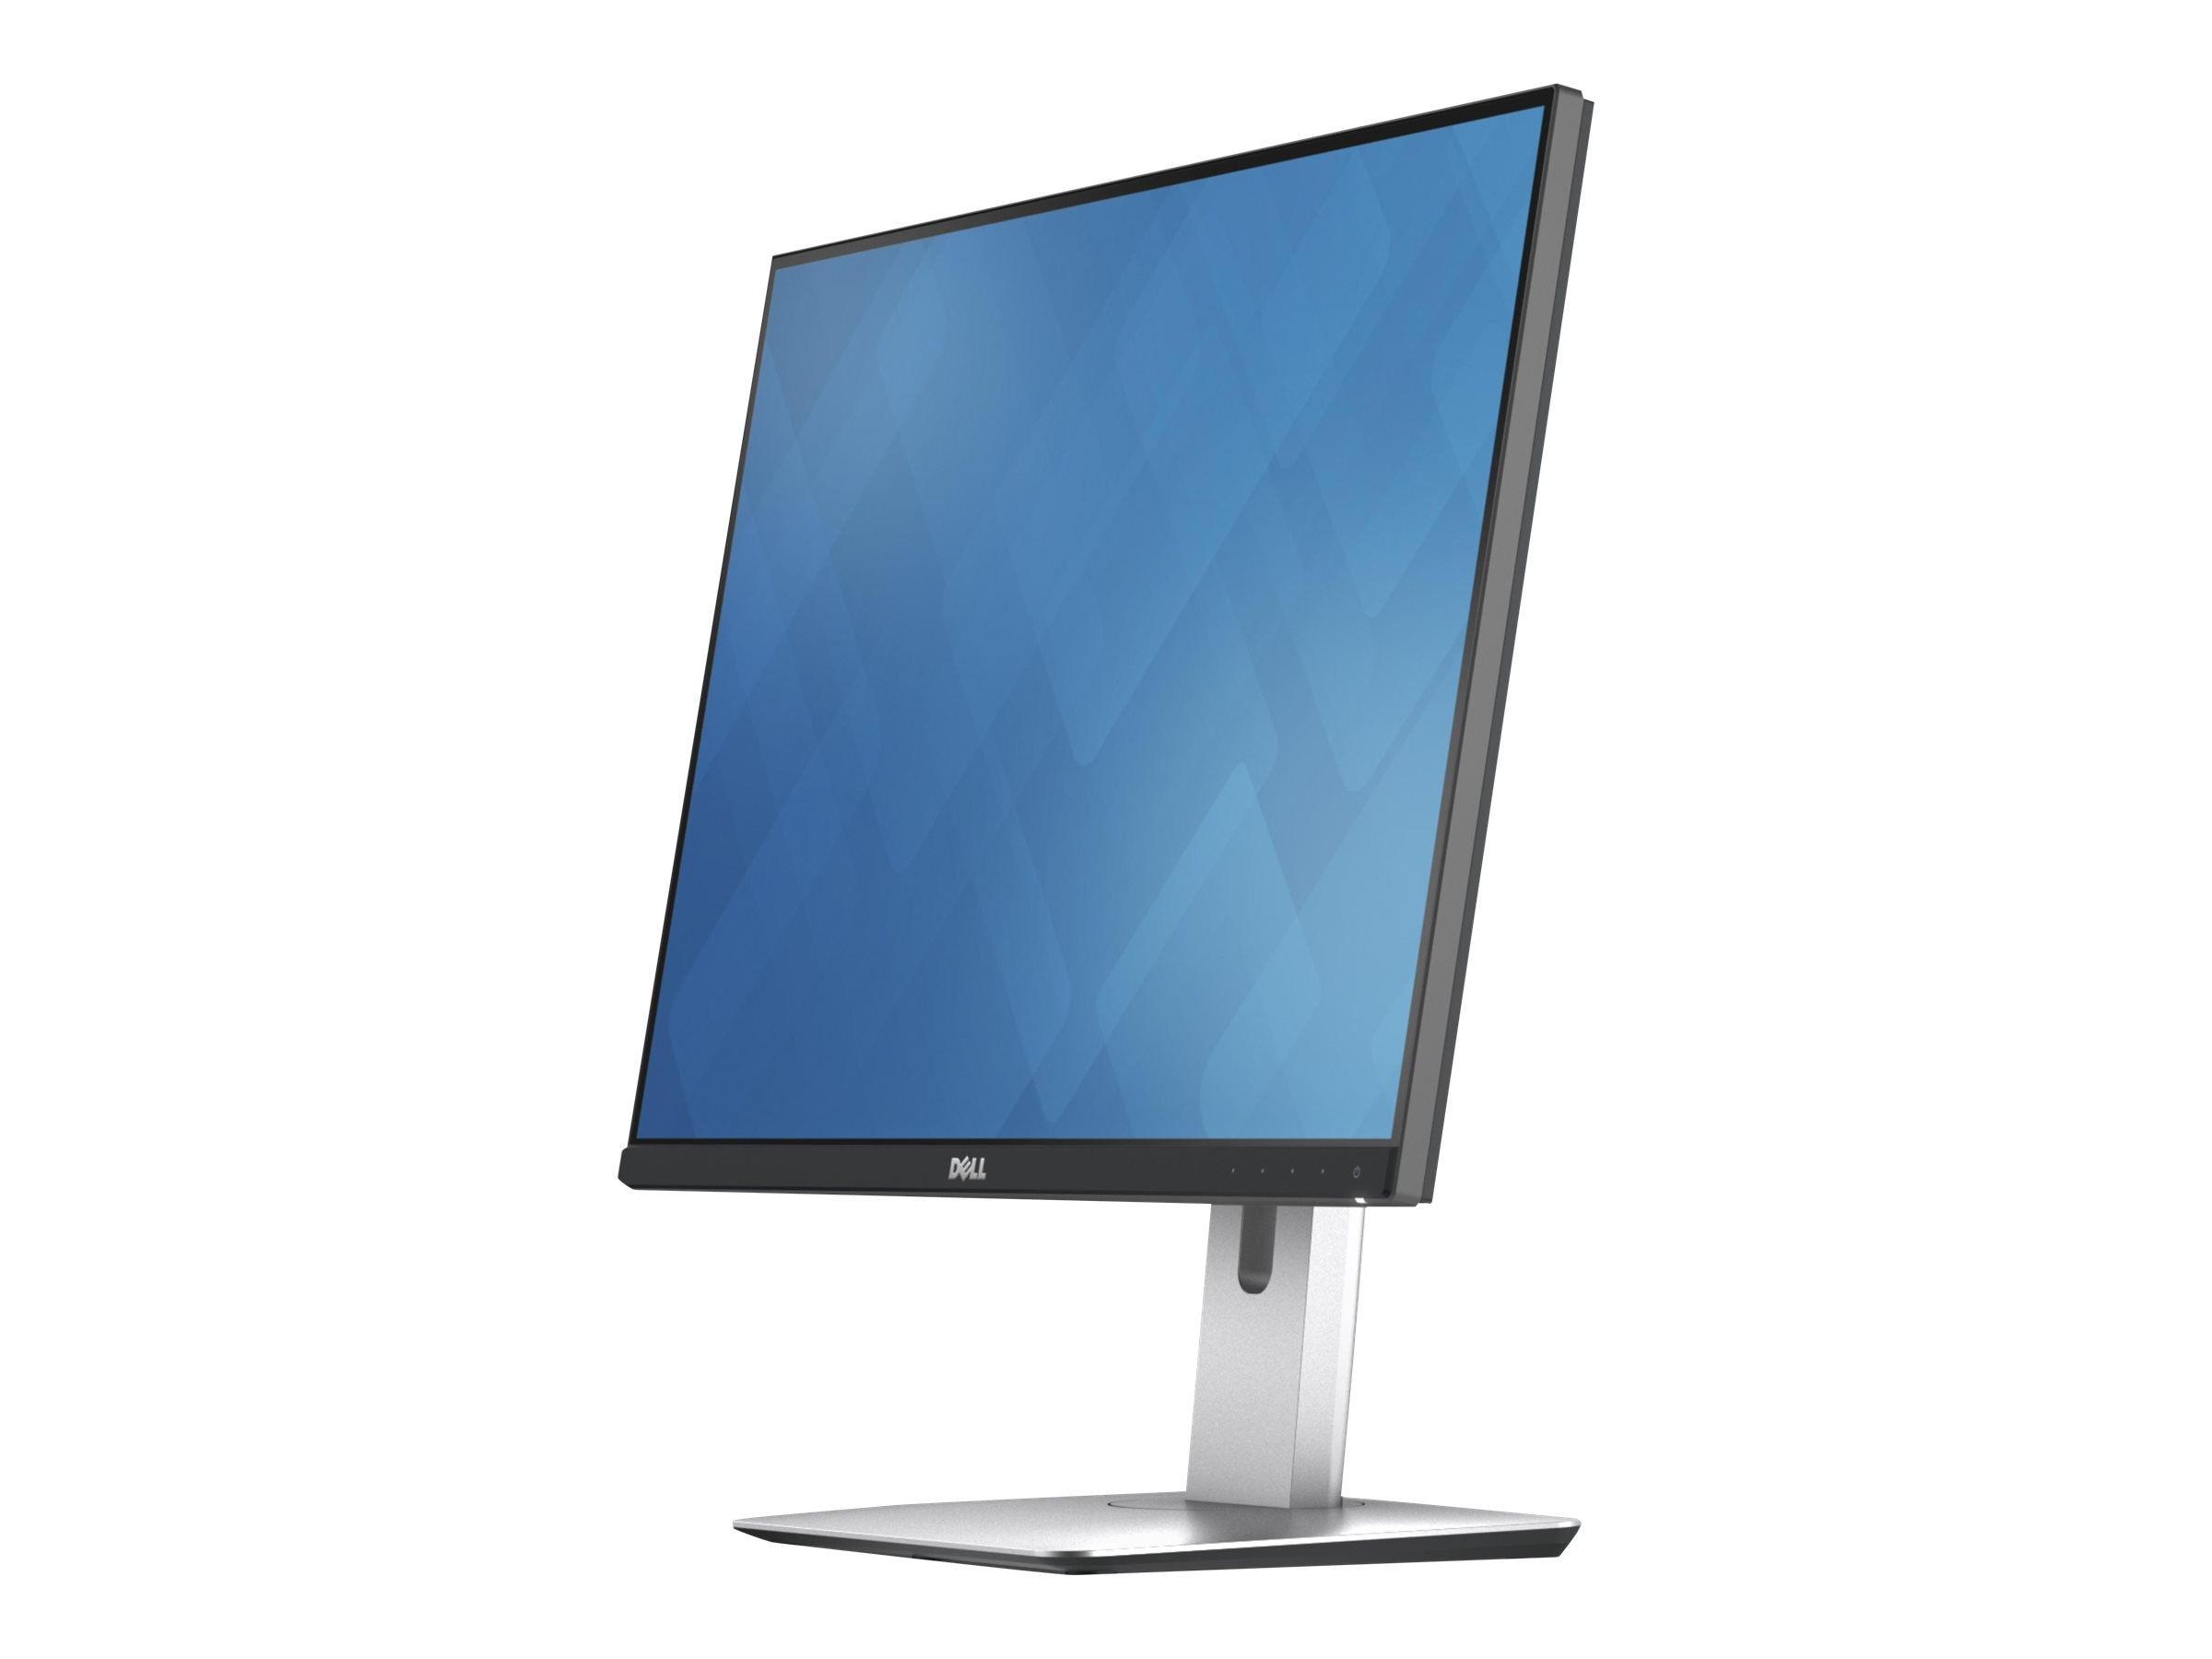 Dell 24.1 U2415 LED-LCD Monitor, Black